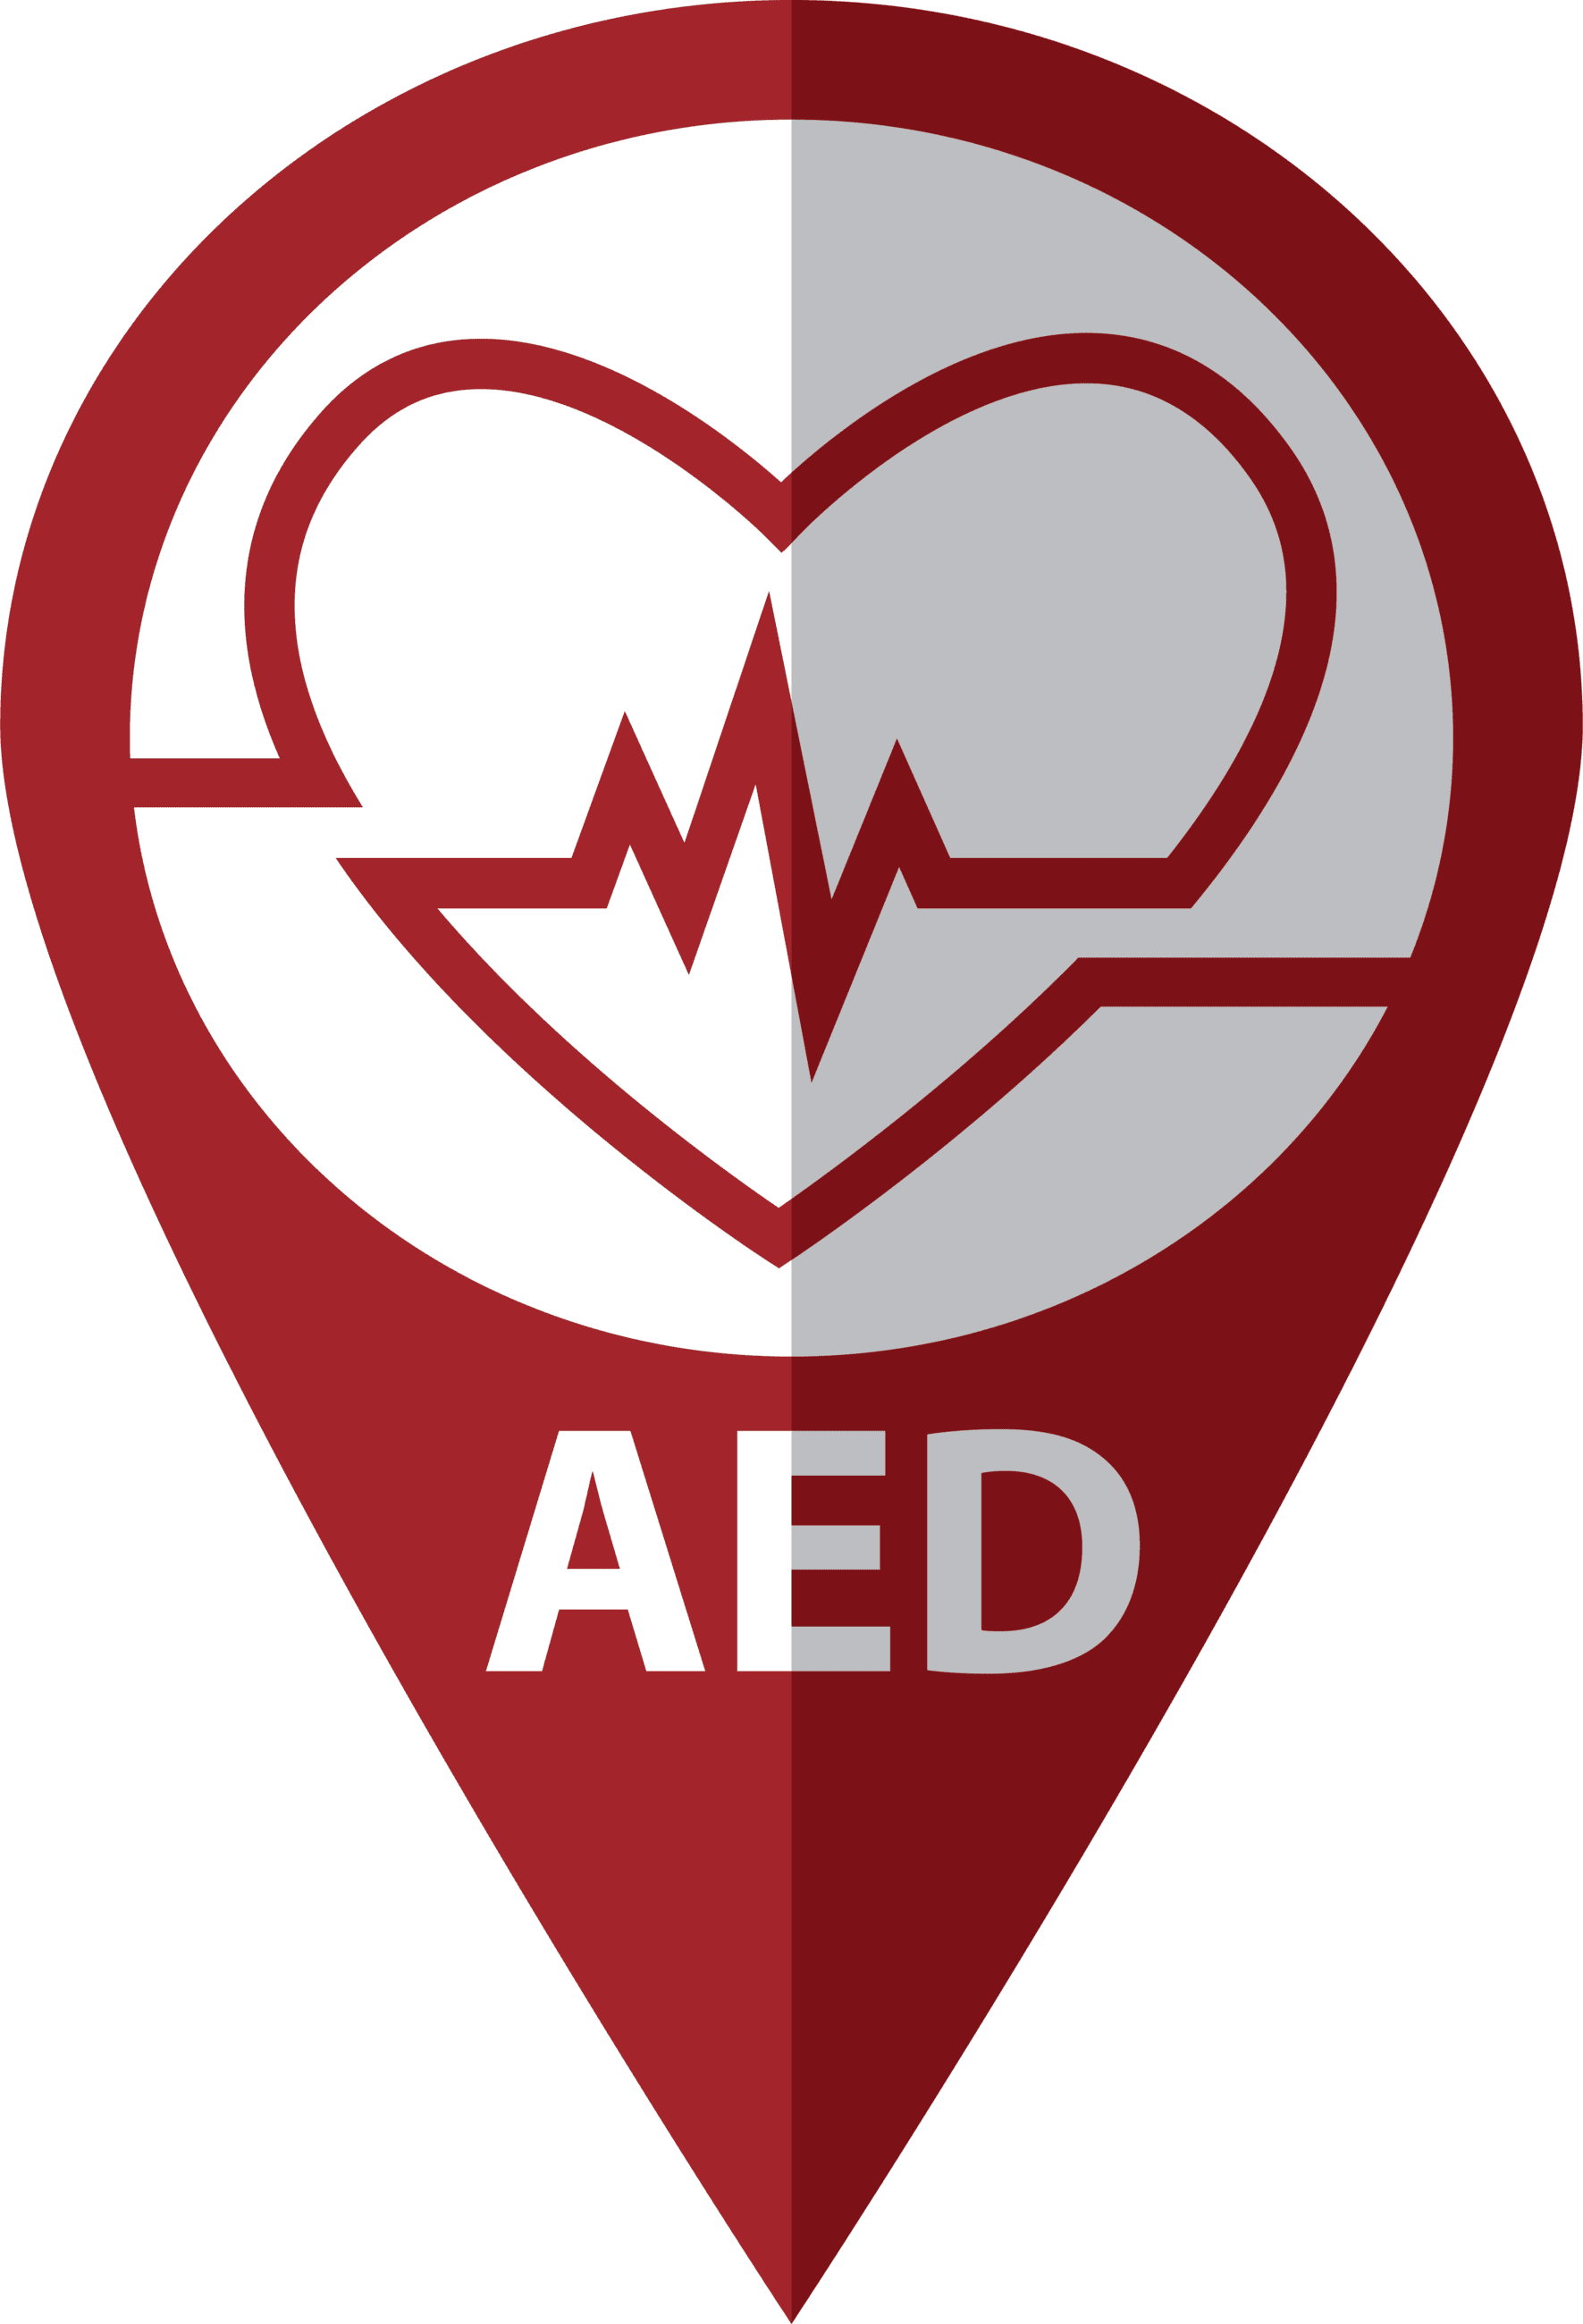 img.AED location Opens in new window